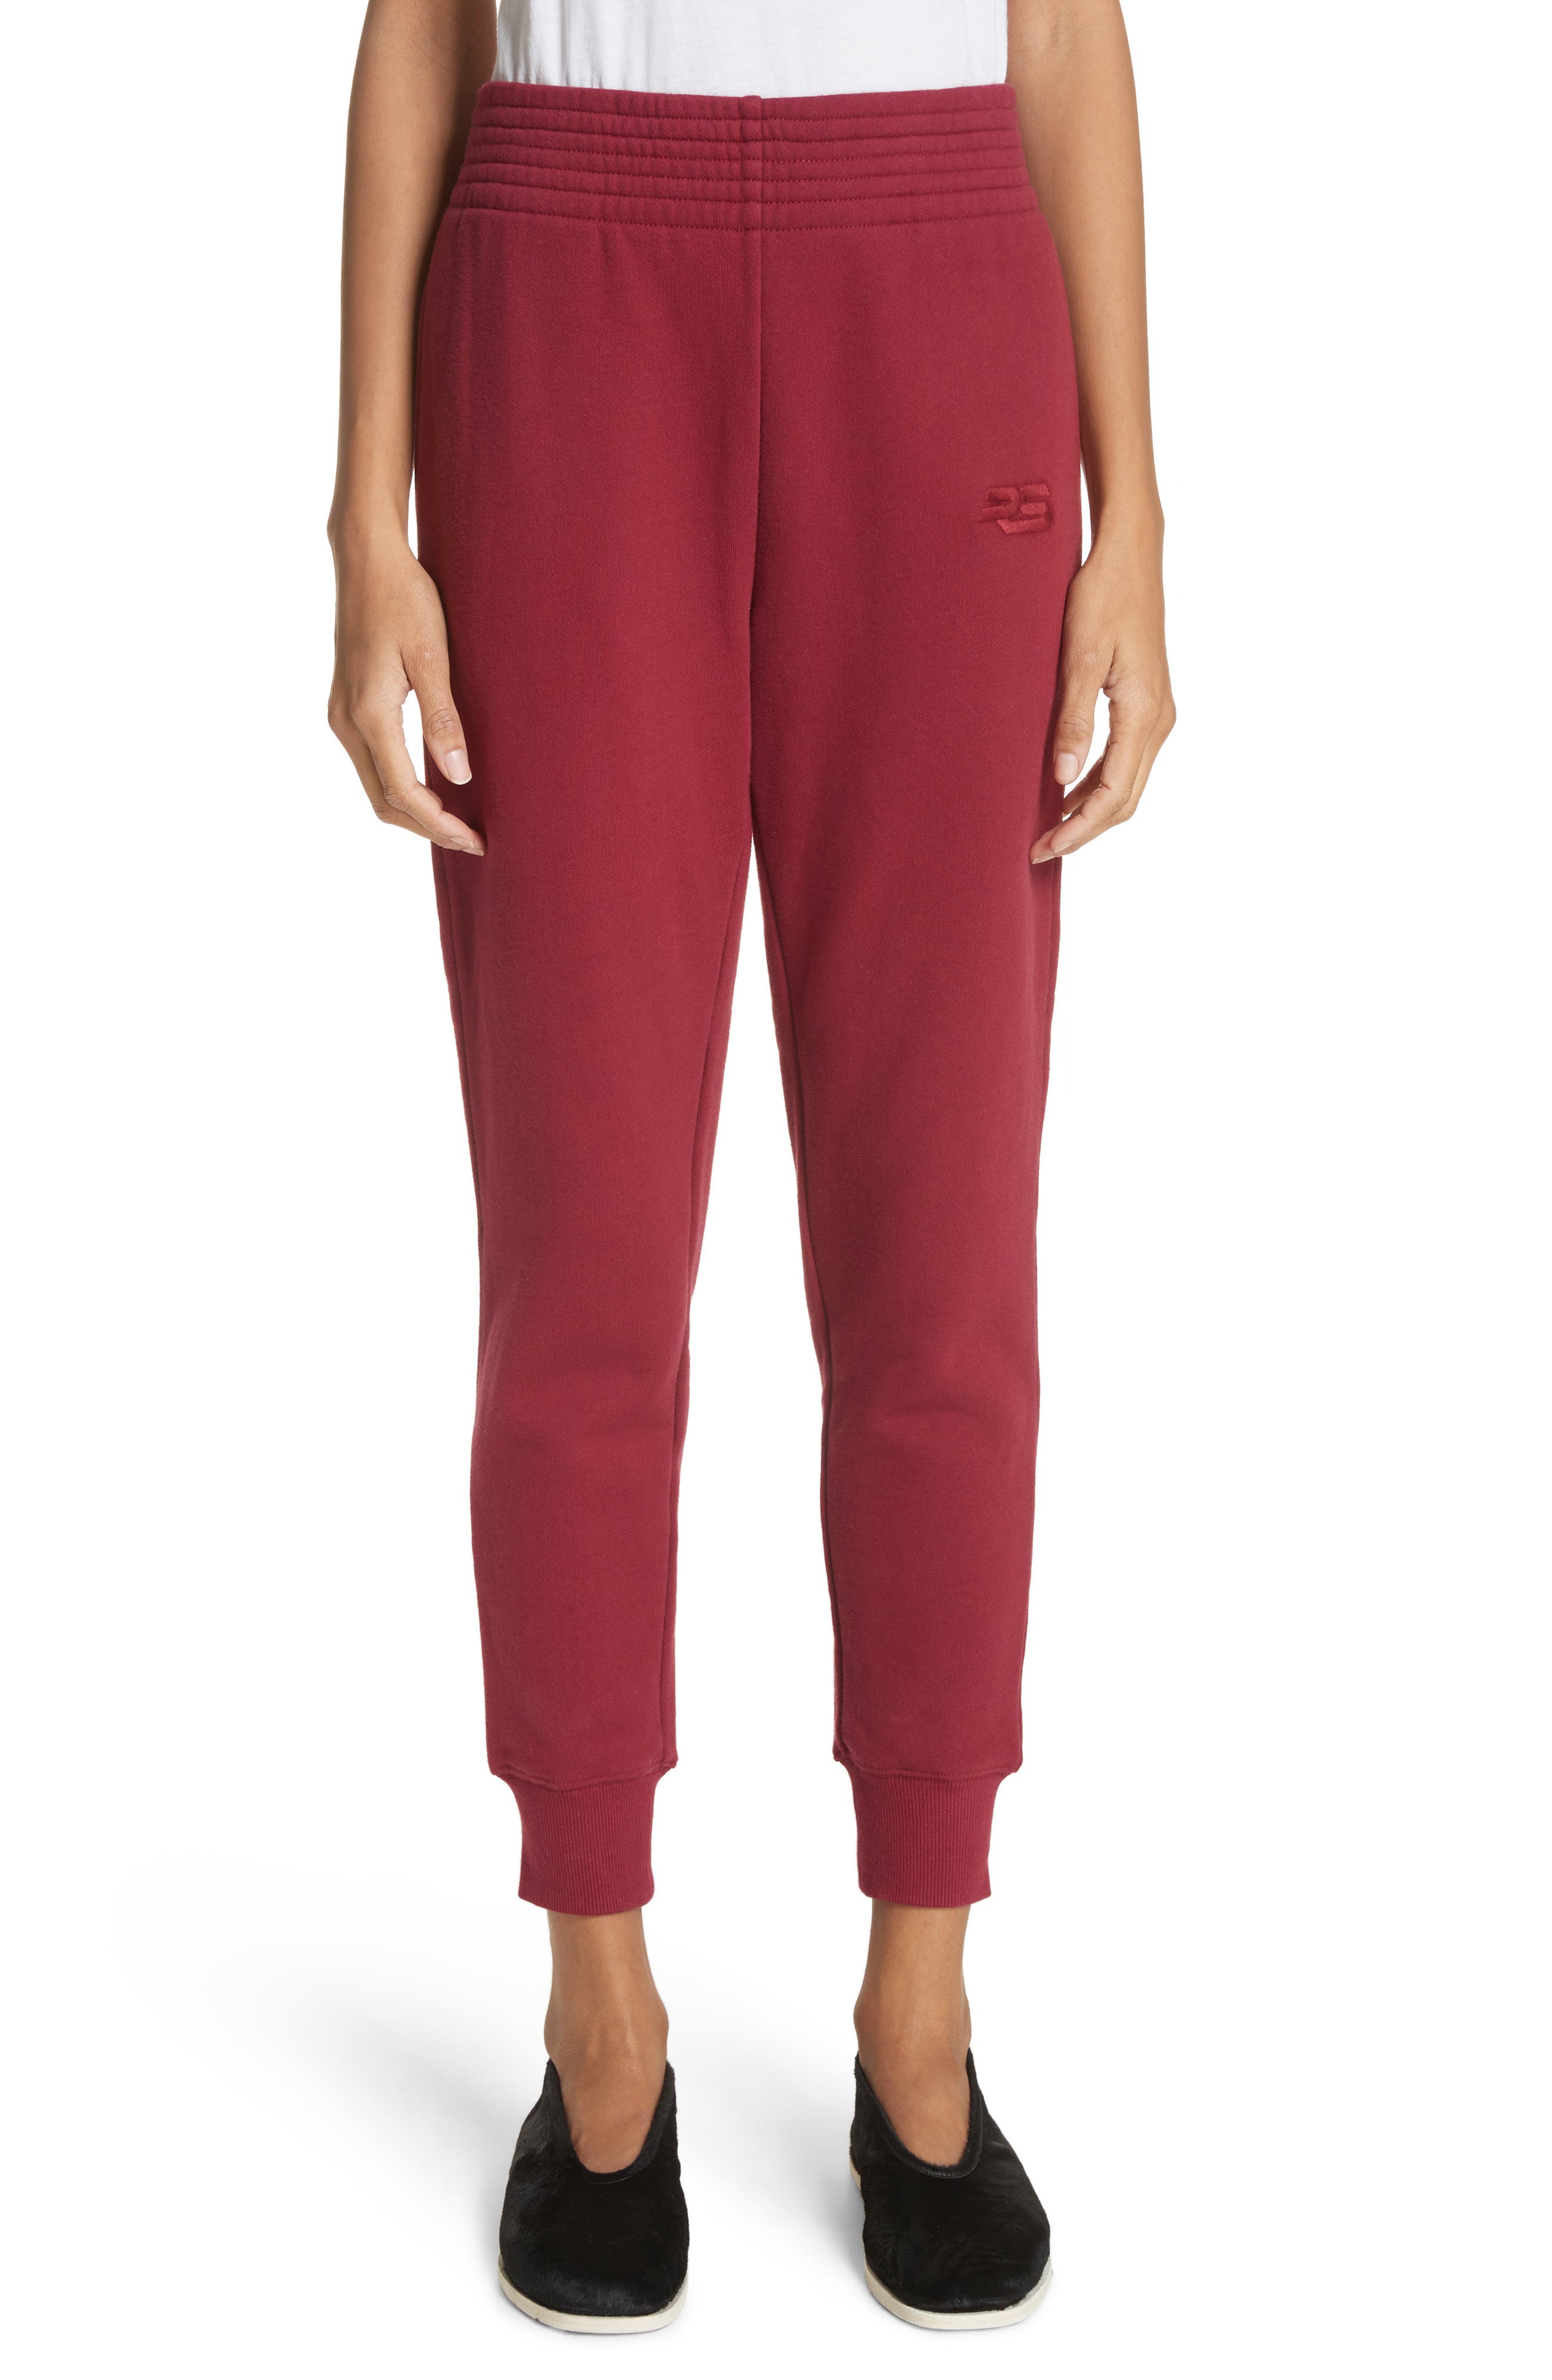 PSWL Sweatpants,                             Main thumbnail 1, color,                             Burgundy